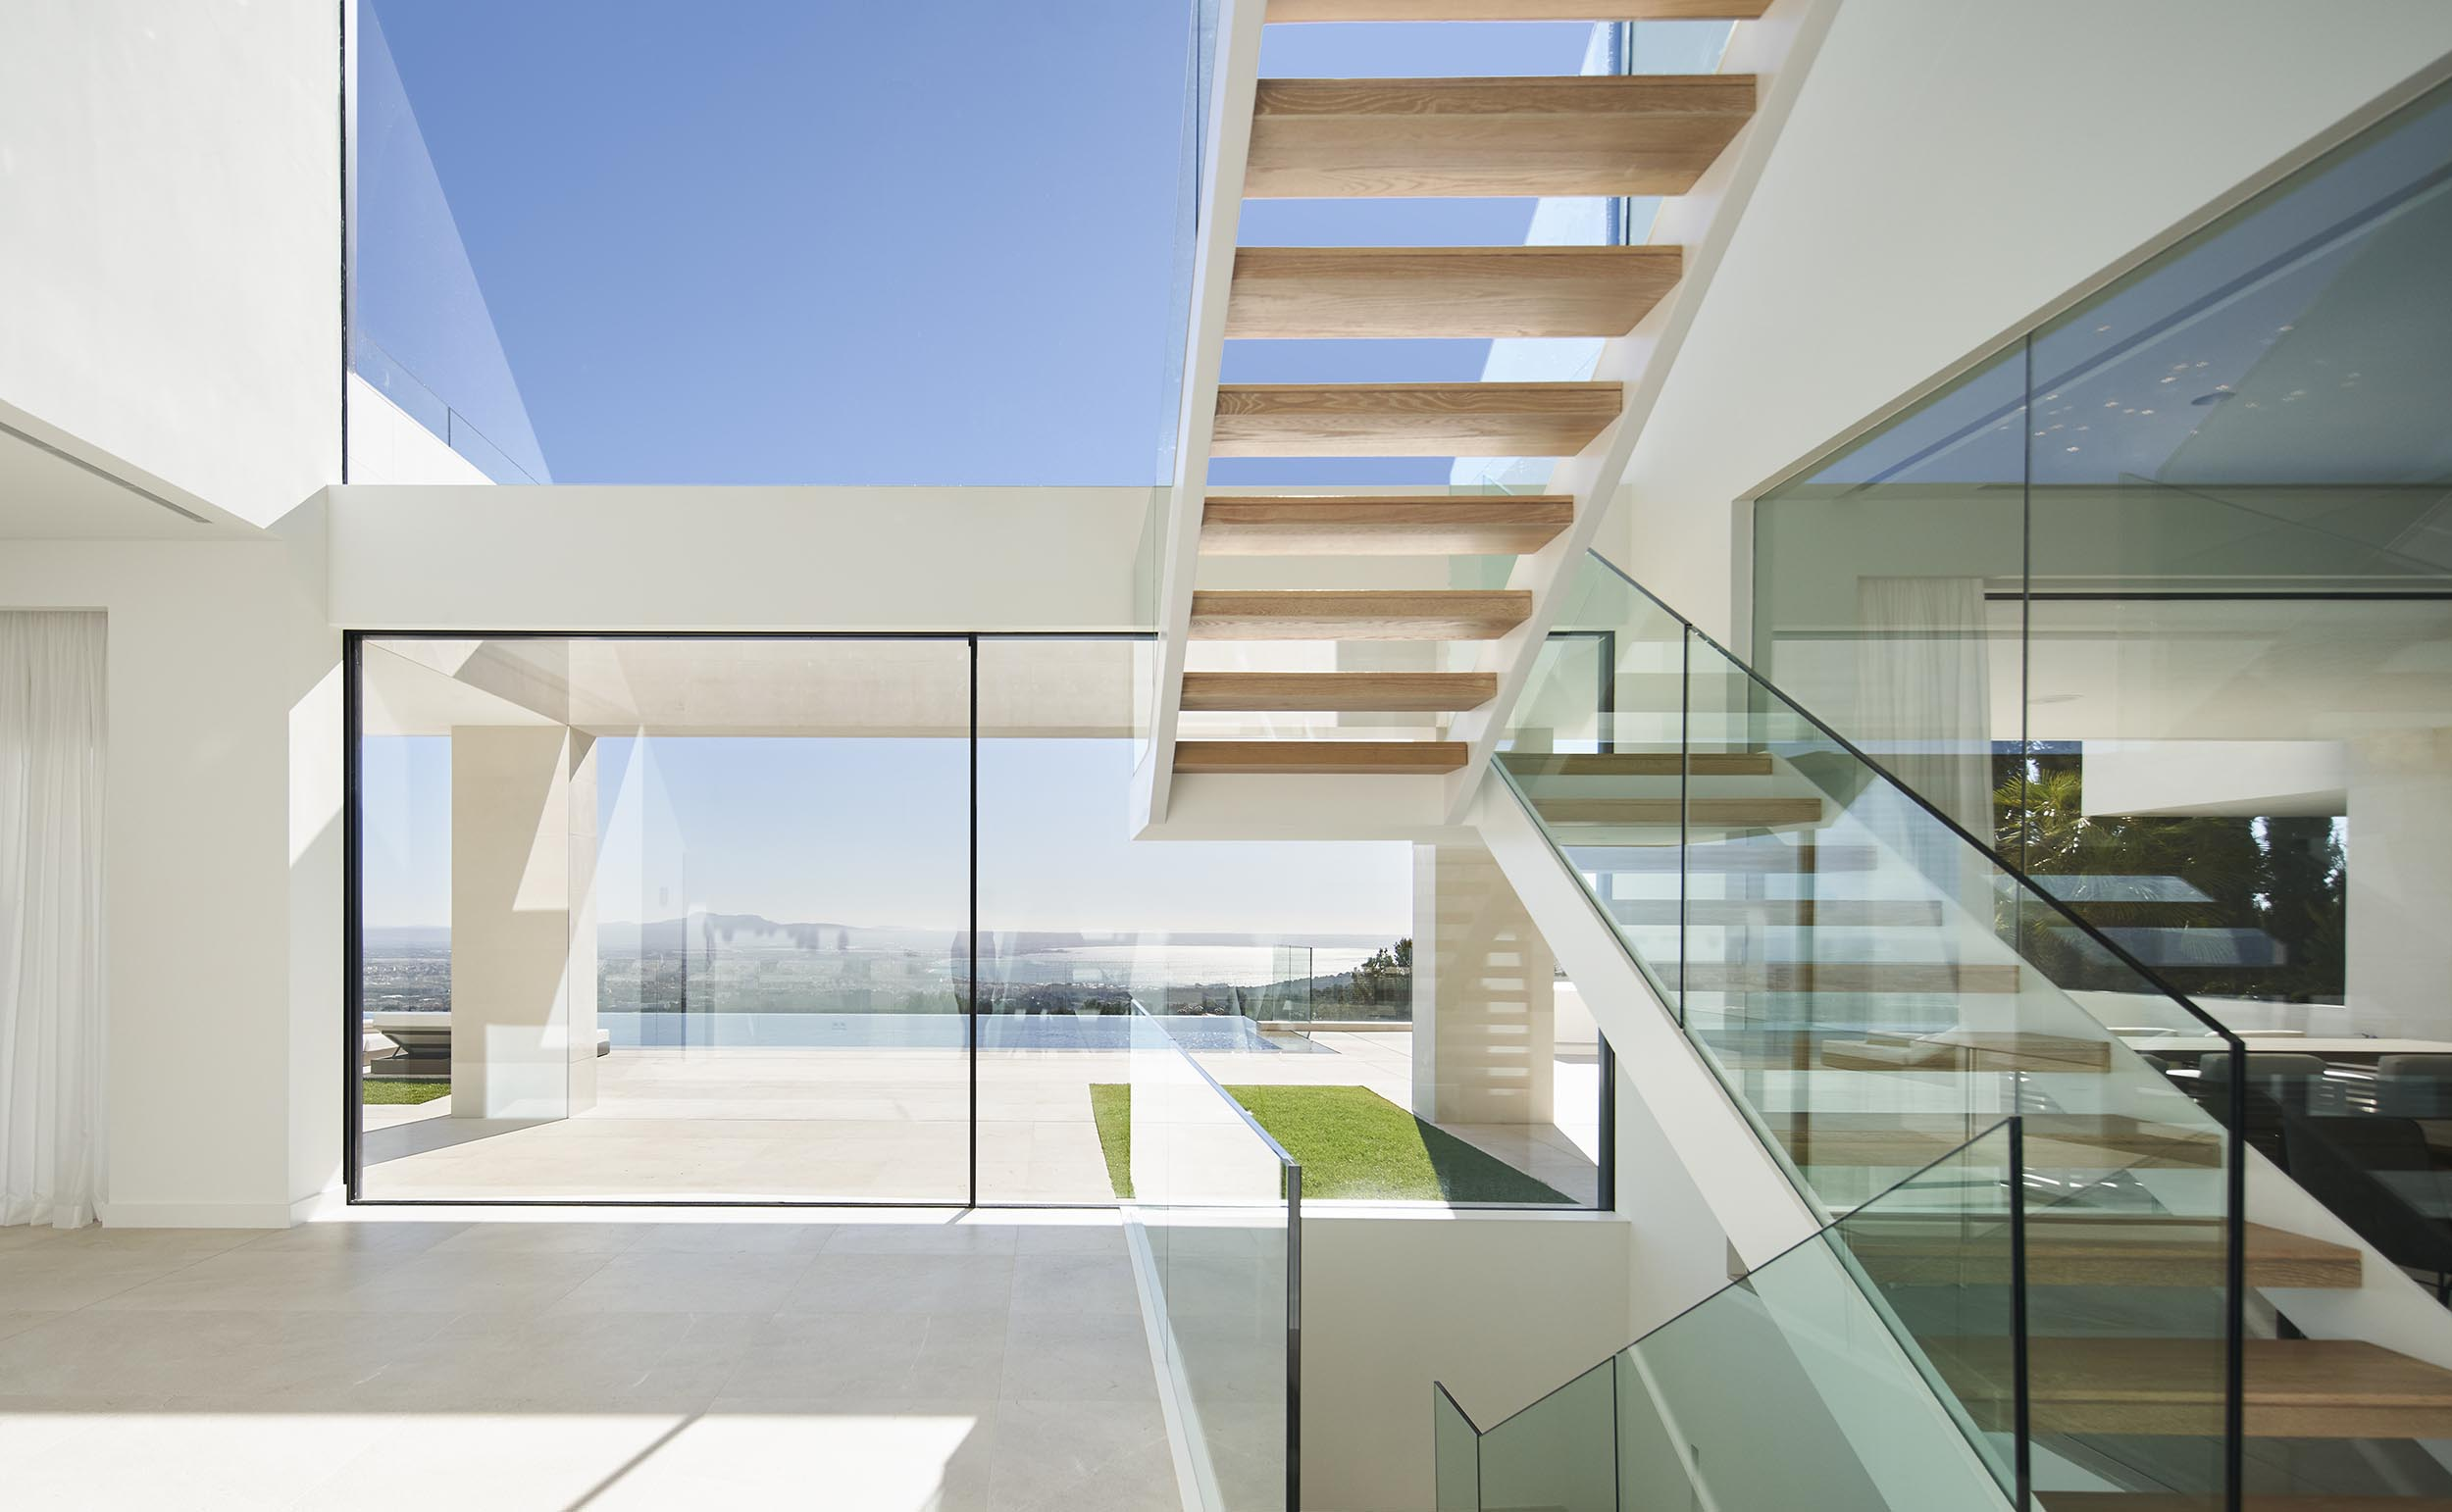 10-mallorca-art-sanchez-architecture-interior-design-photoraphy-video.jpg